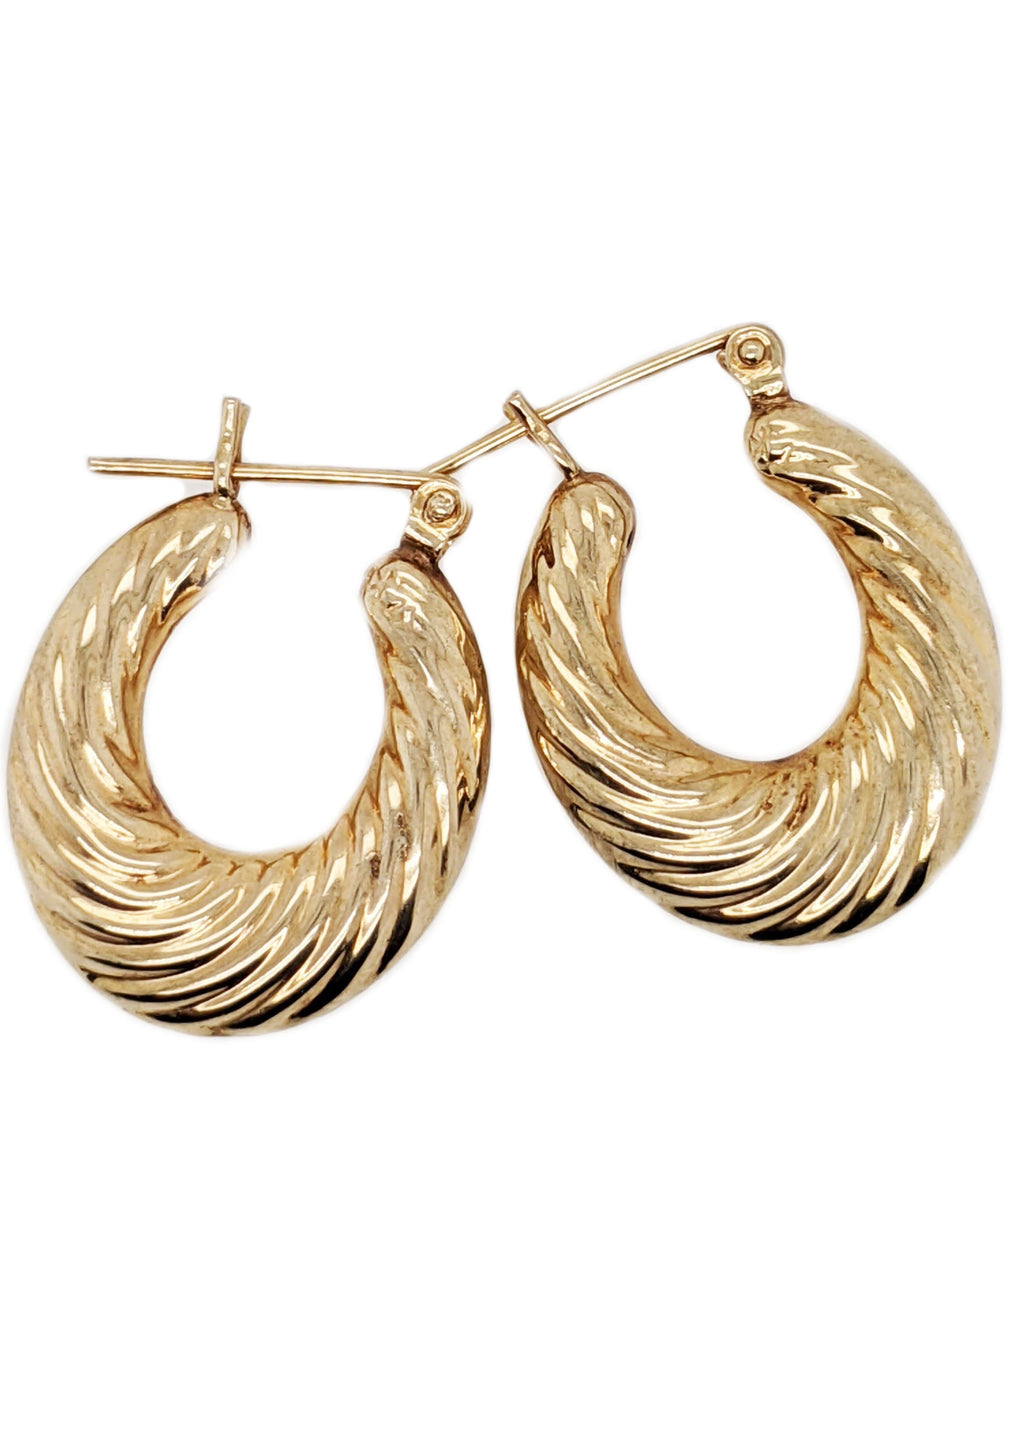 Akila - 10k Yellow Gold Textured Hoop Oval Earrings